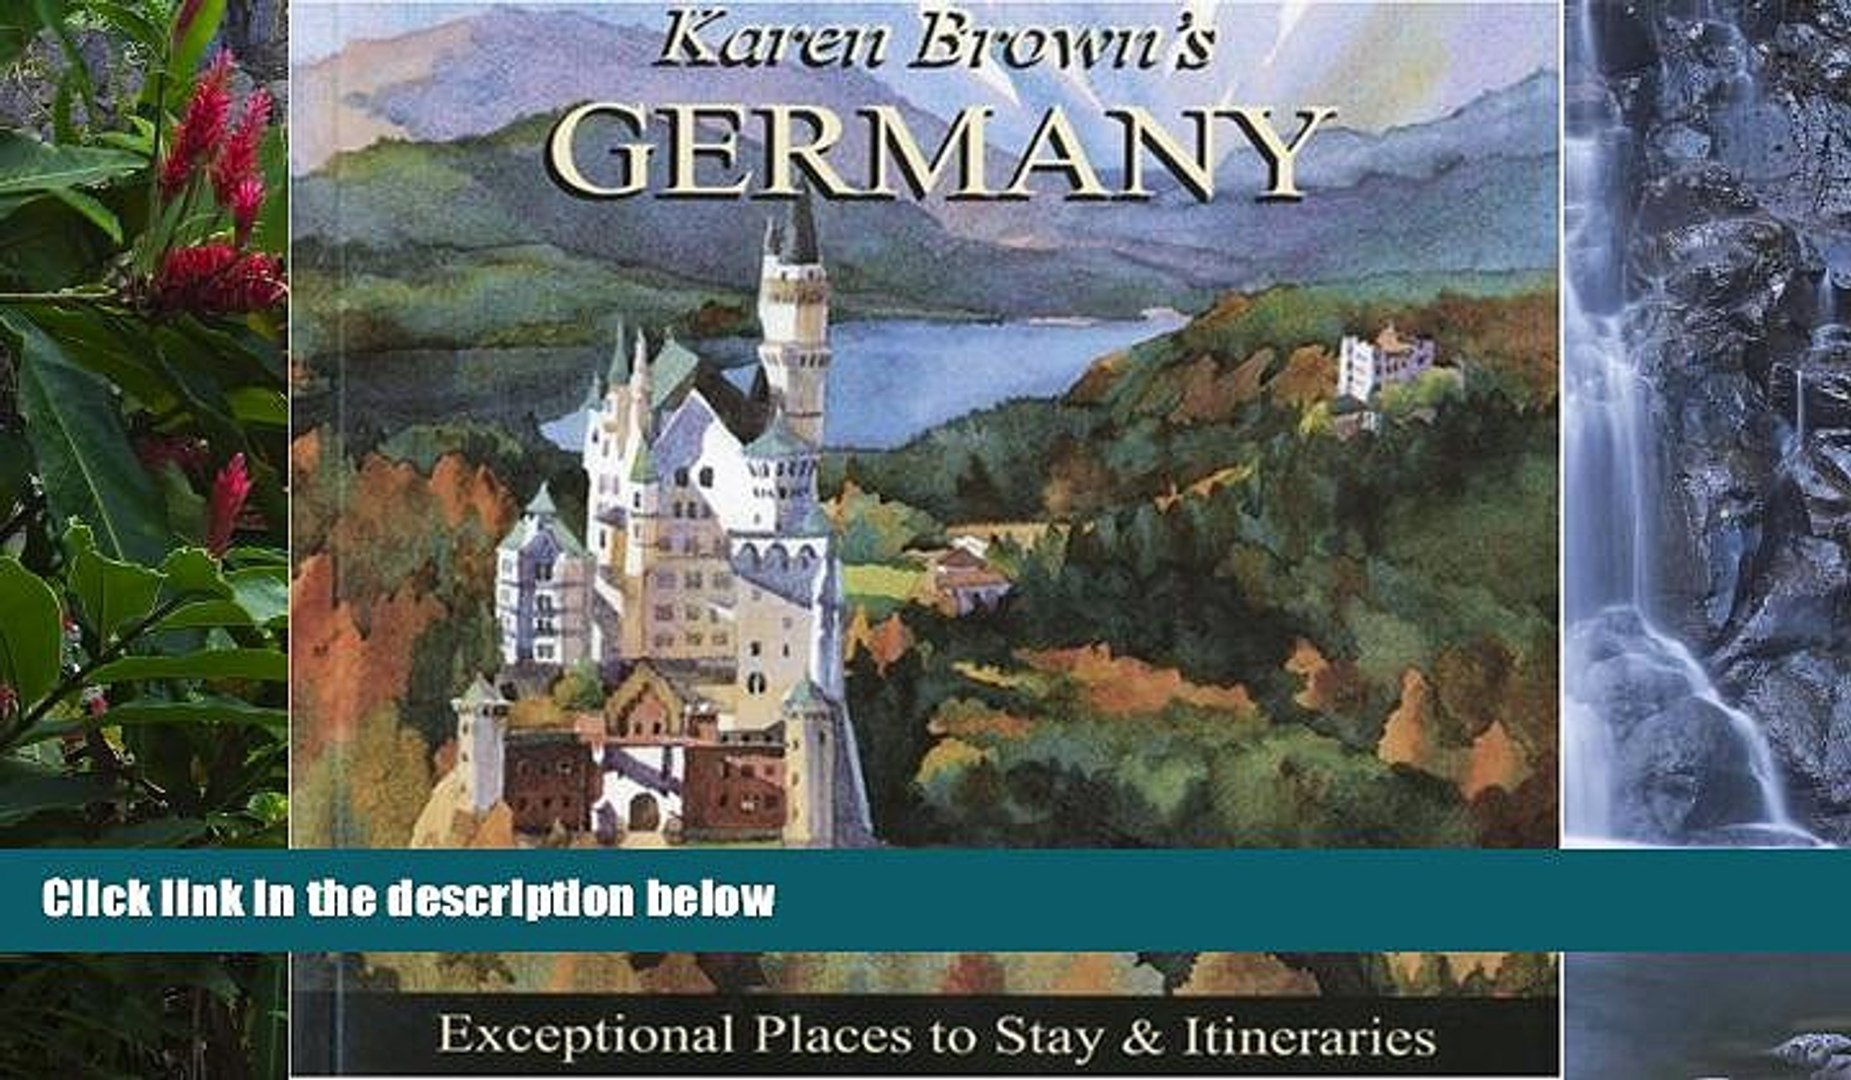 Deals in Books  Karen Brown s Germany 2010: Exceptional Places to Stay   Itineraries (Karen Brown